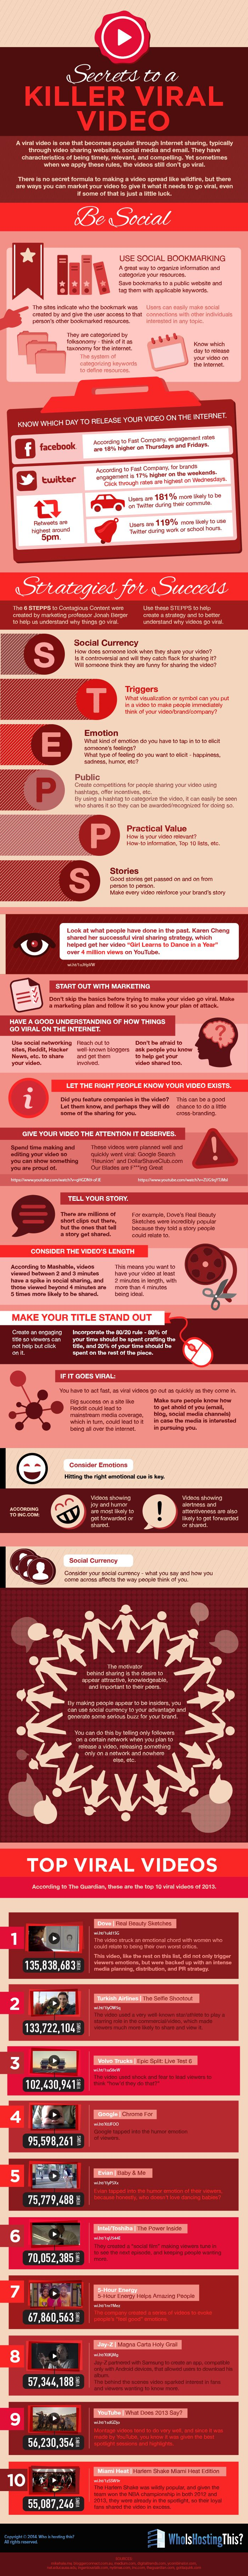 What Are Some Steps And Strategies To Help Your Videos Go Viral? #infographic